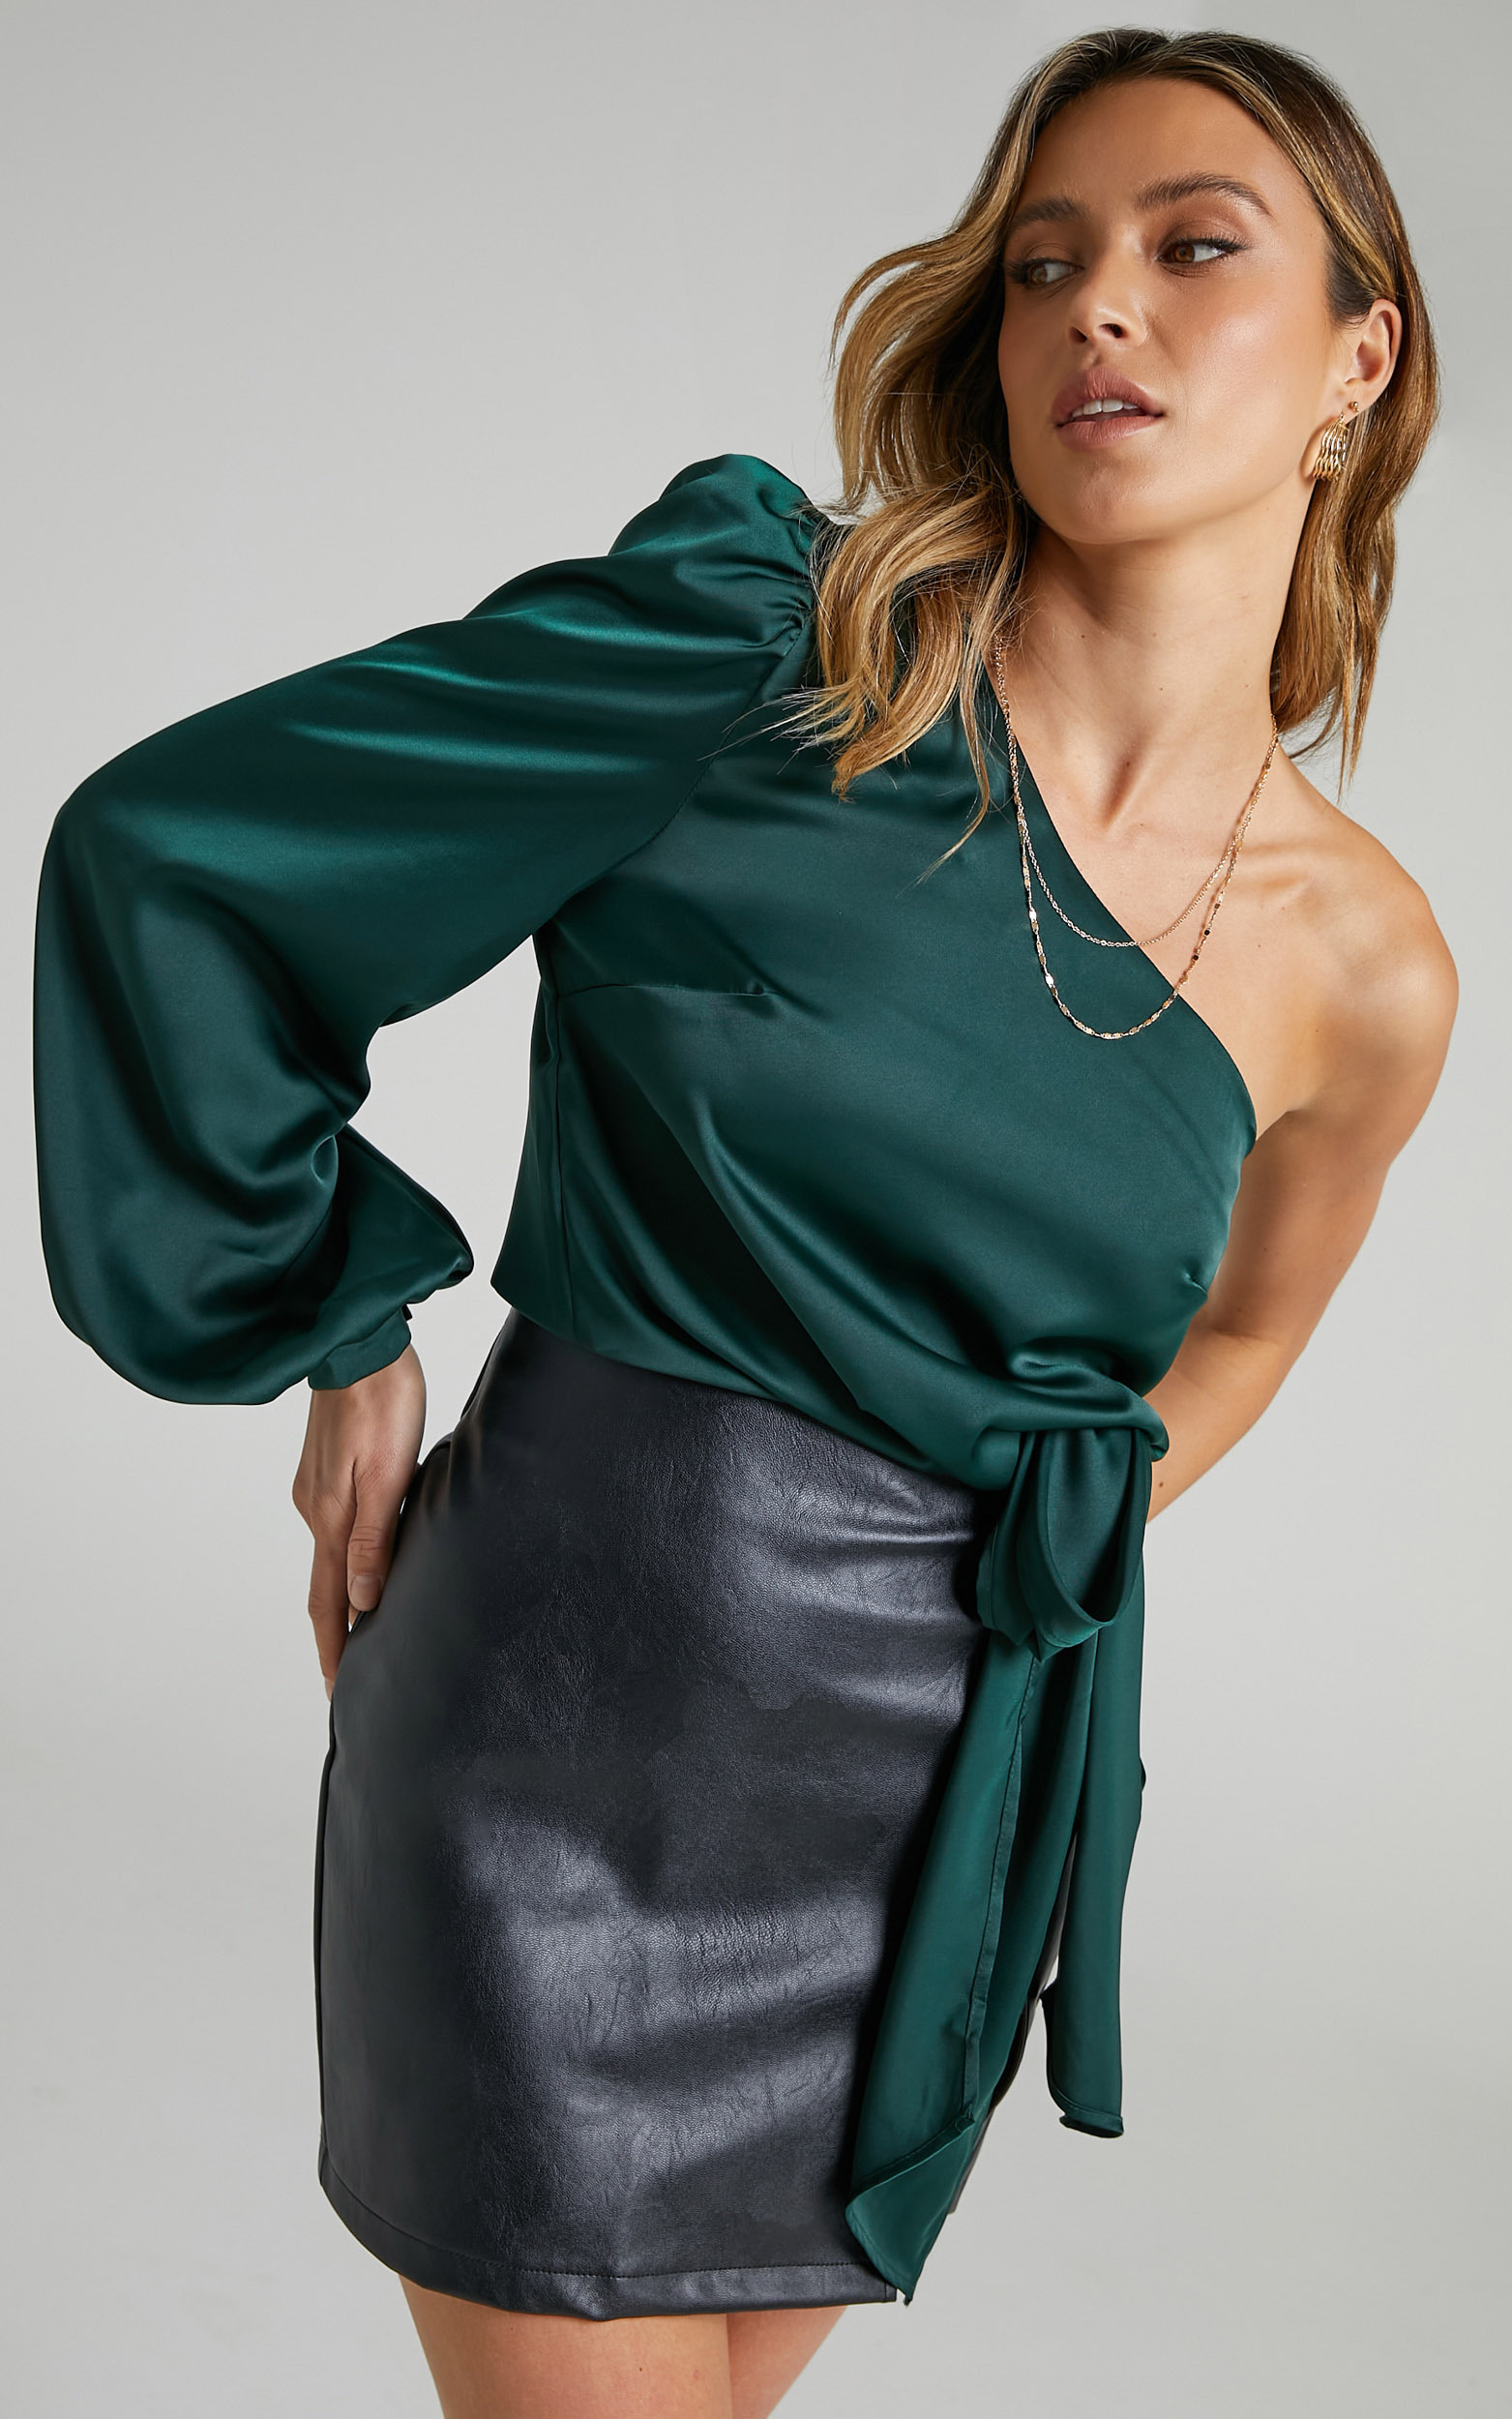 Vickie One Shoulder Tie Front Top in Emerald - 06, GRN1, hi-res image number null